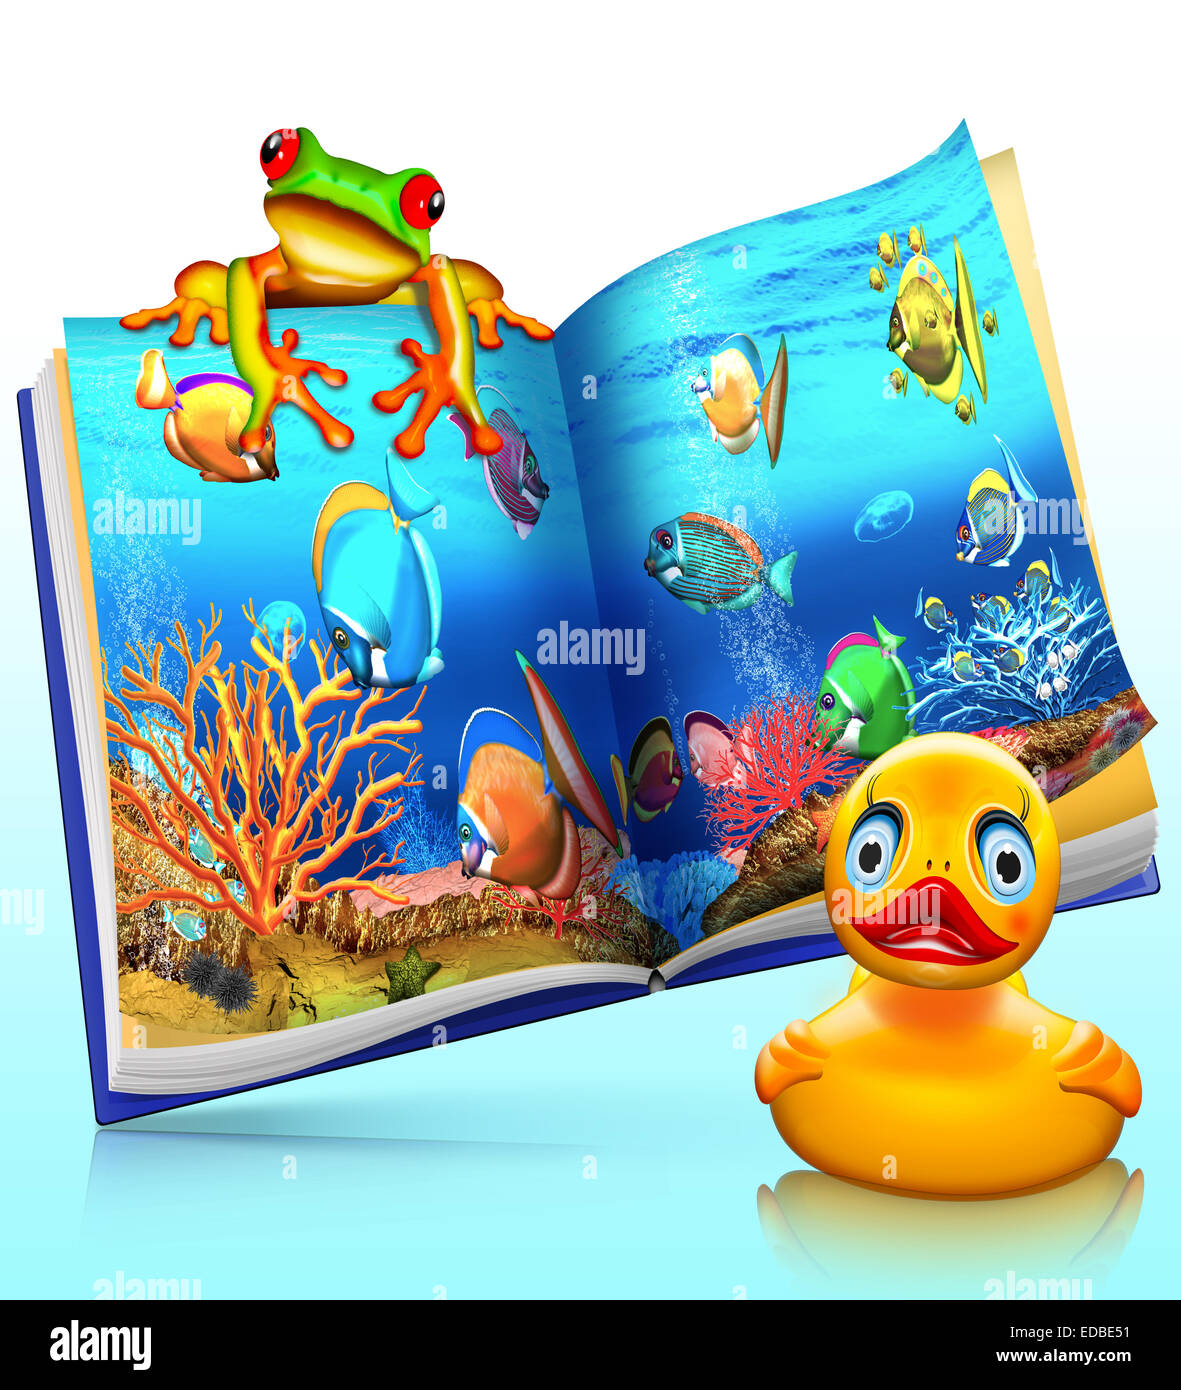 Coral reef, coral fish, red-eyed tree frog, children's book with a rubber duck - Stock Image